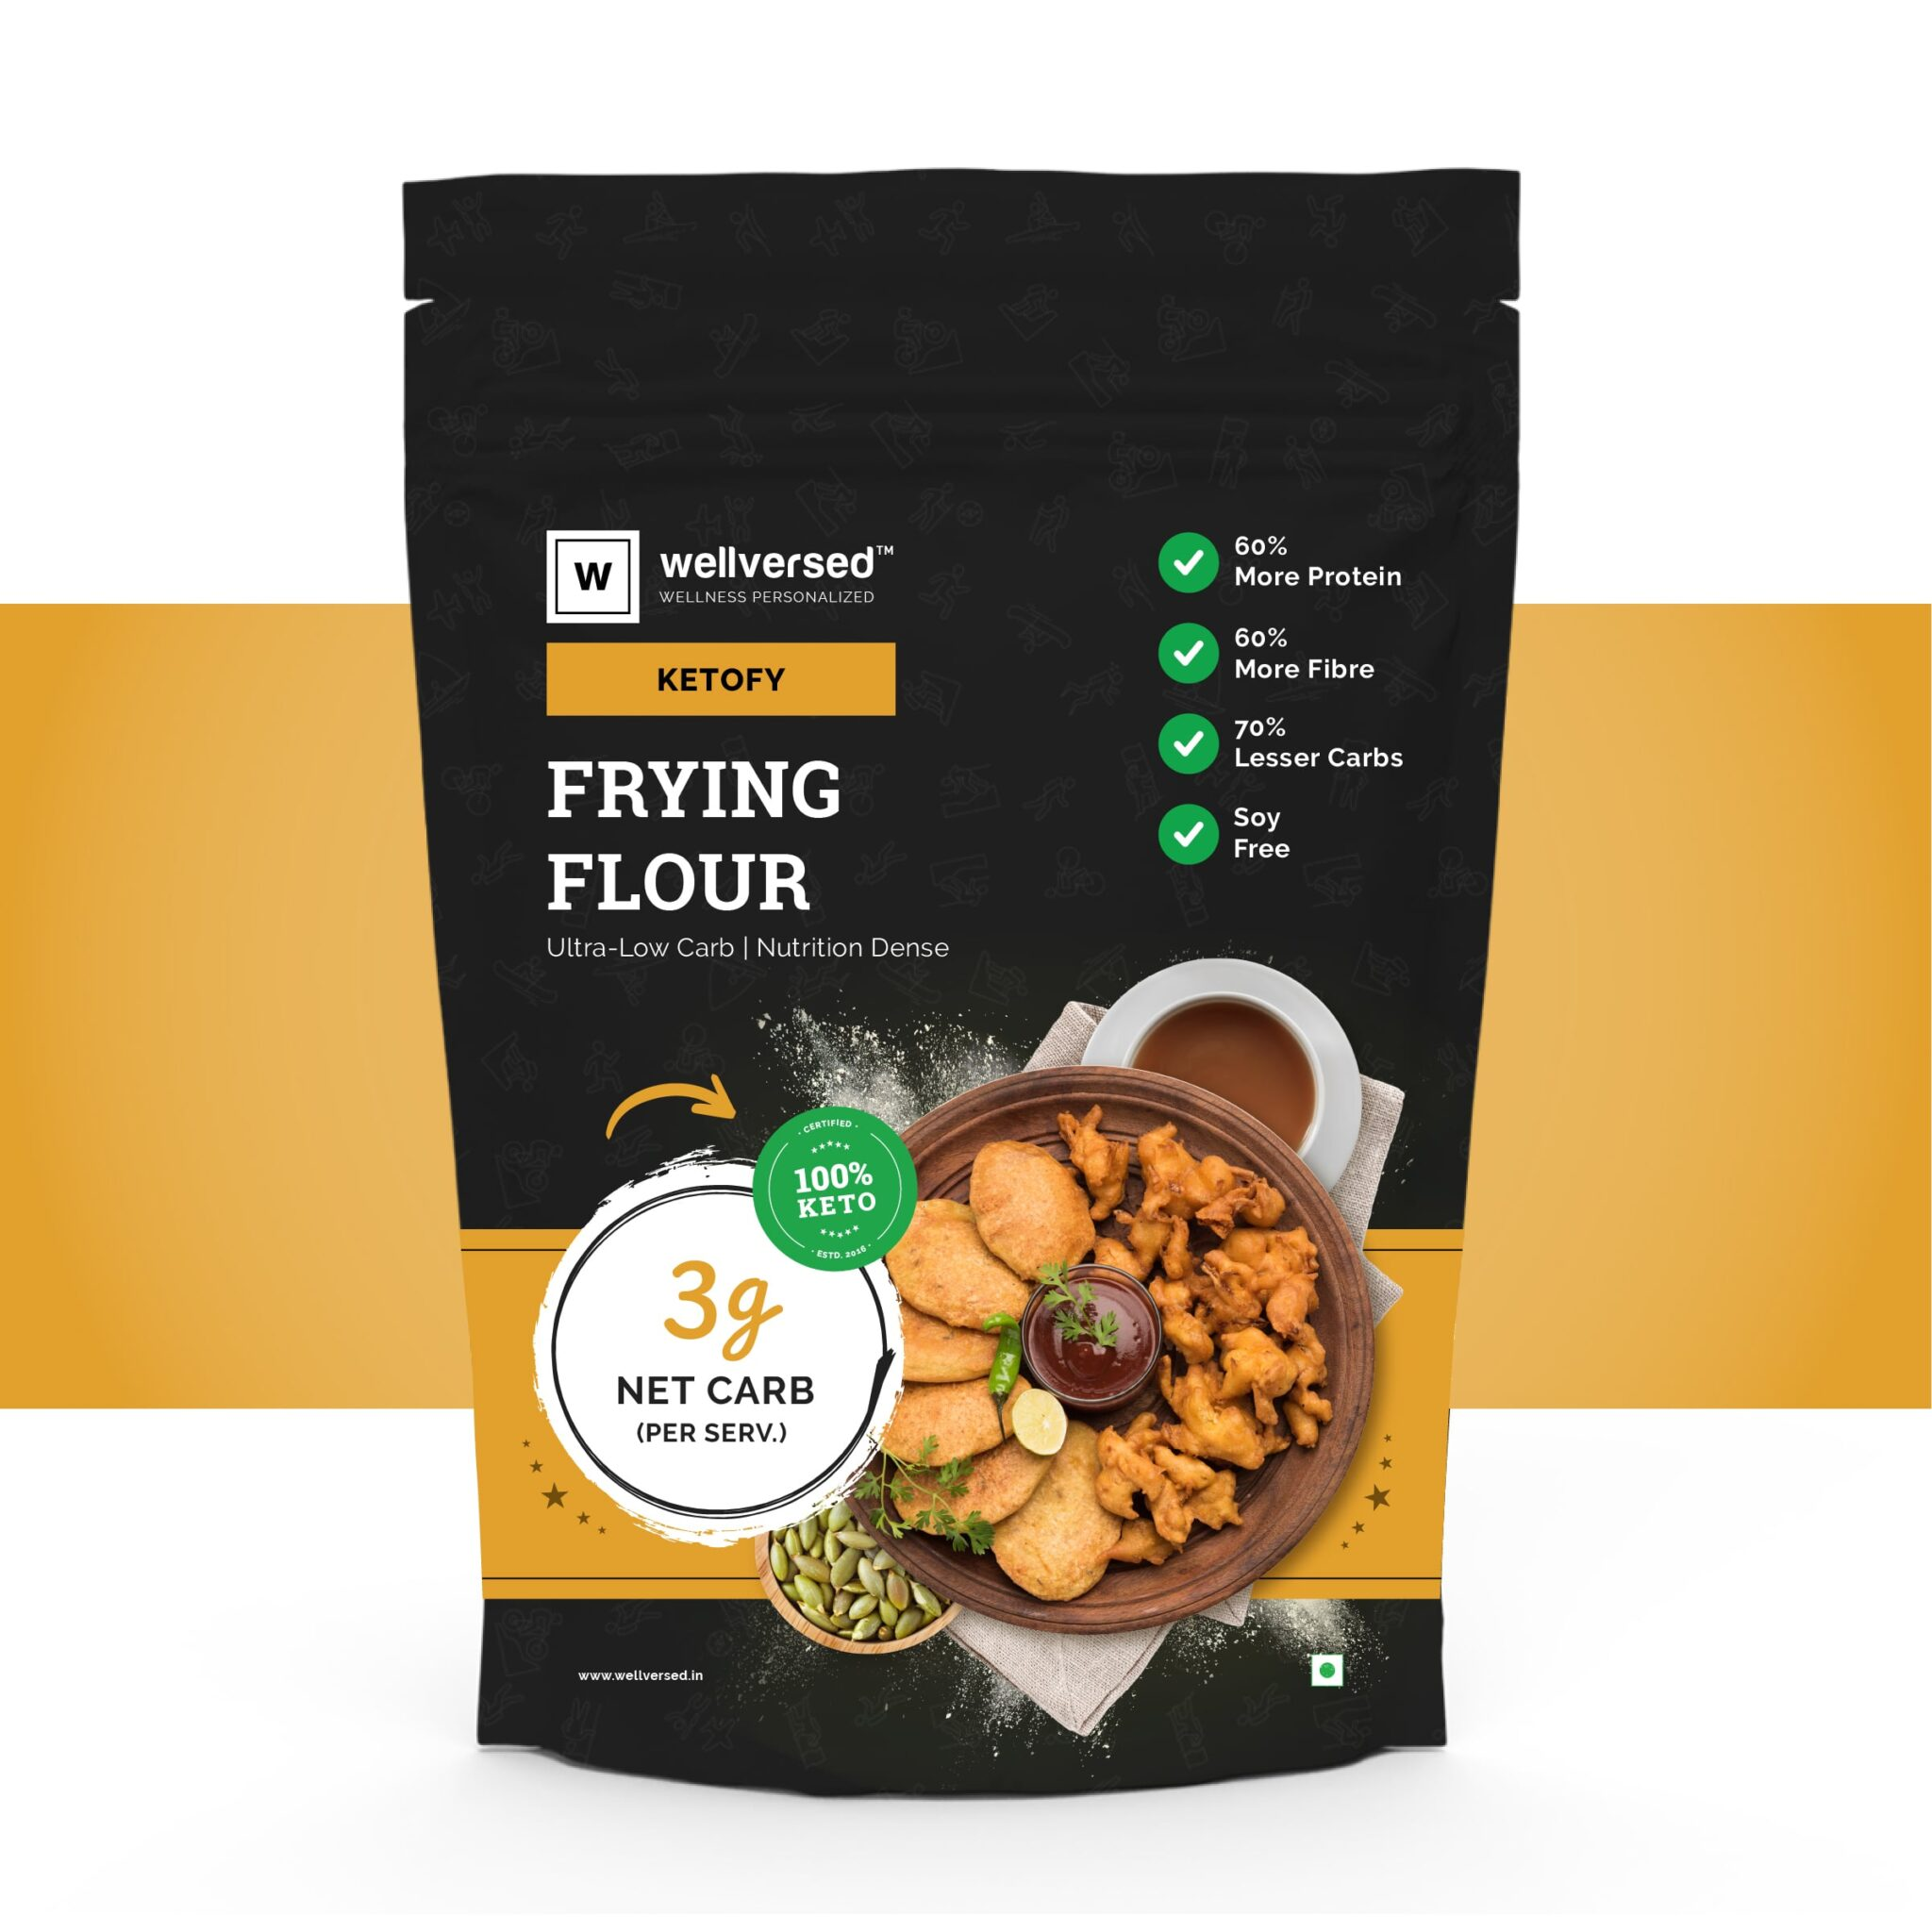 ketofy  frying flour  ultra low carb